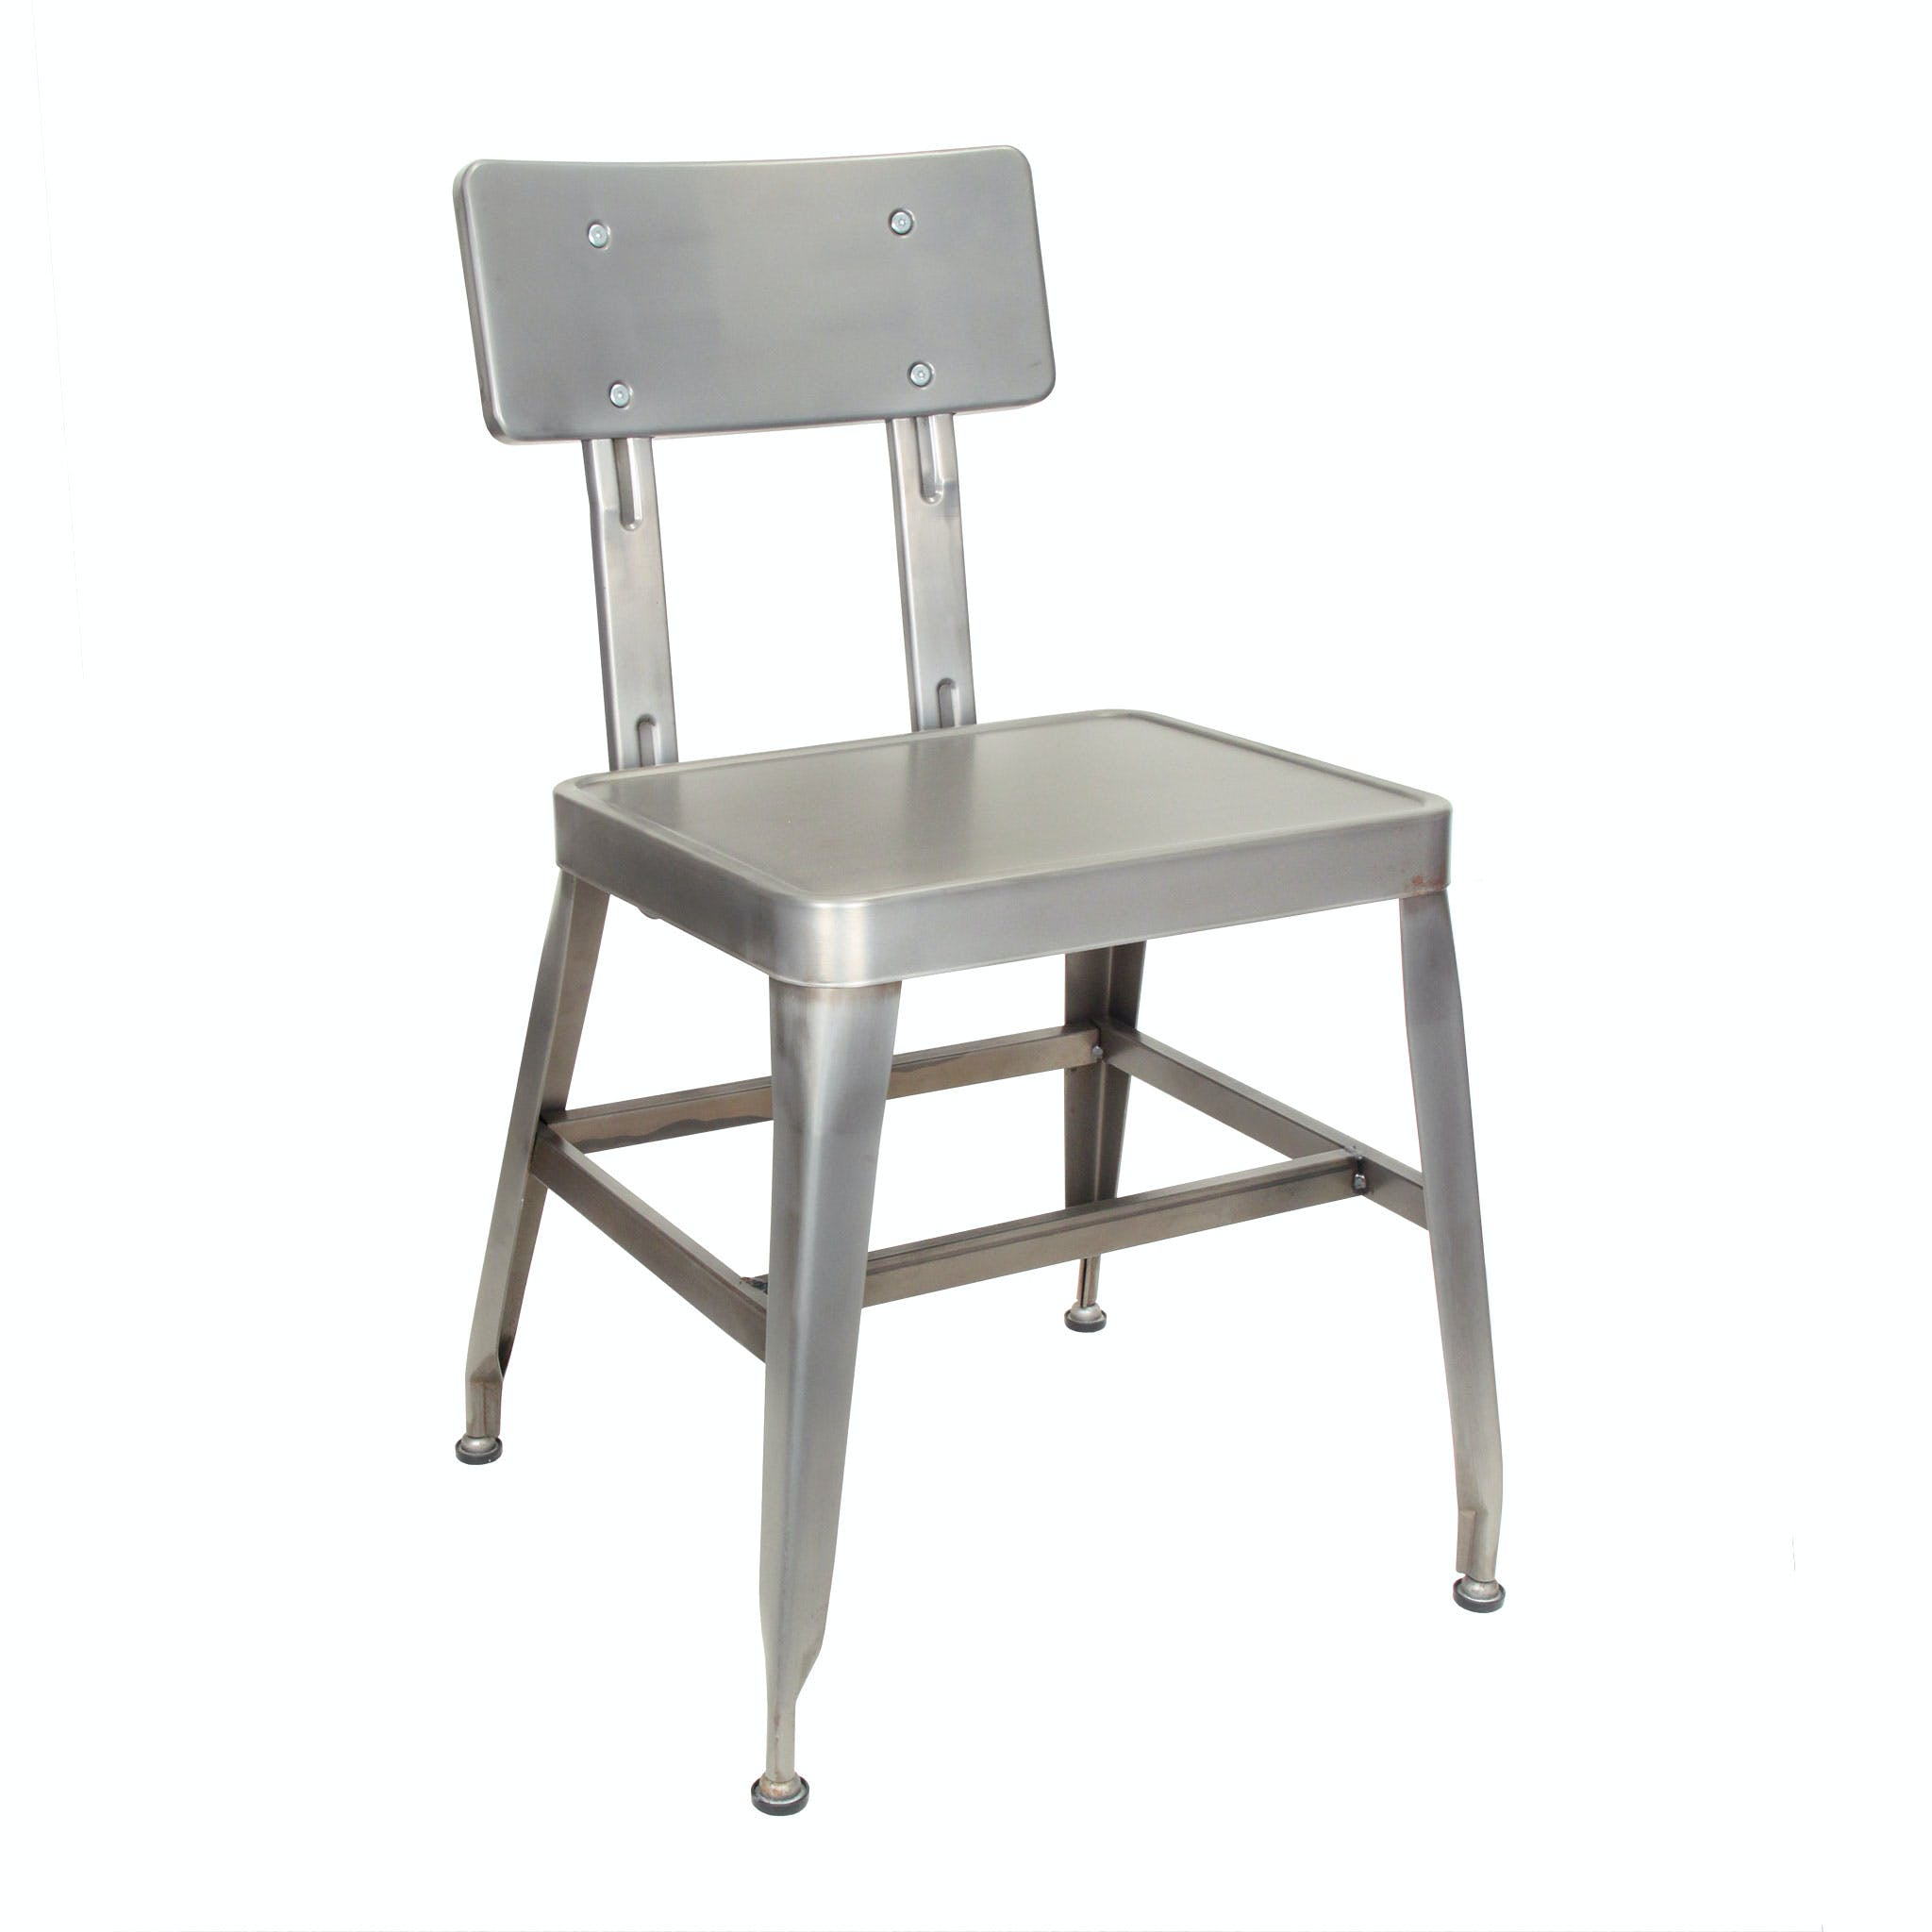 Attrayant Clear Coat Simon Chair   Simon Cafe Chair   Sold By East Coast Chair U0026  Barstool